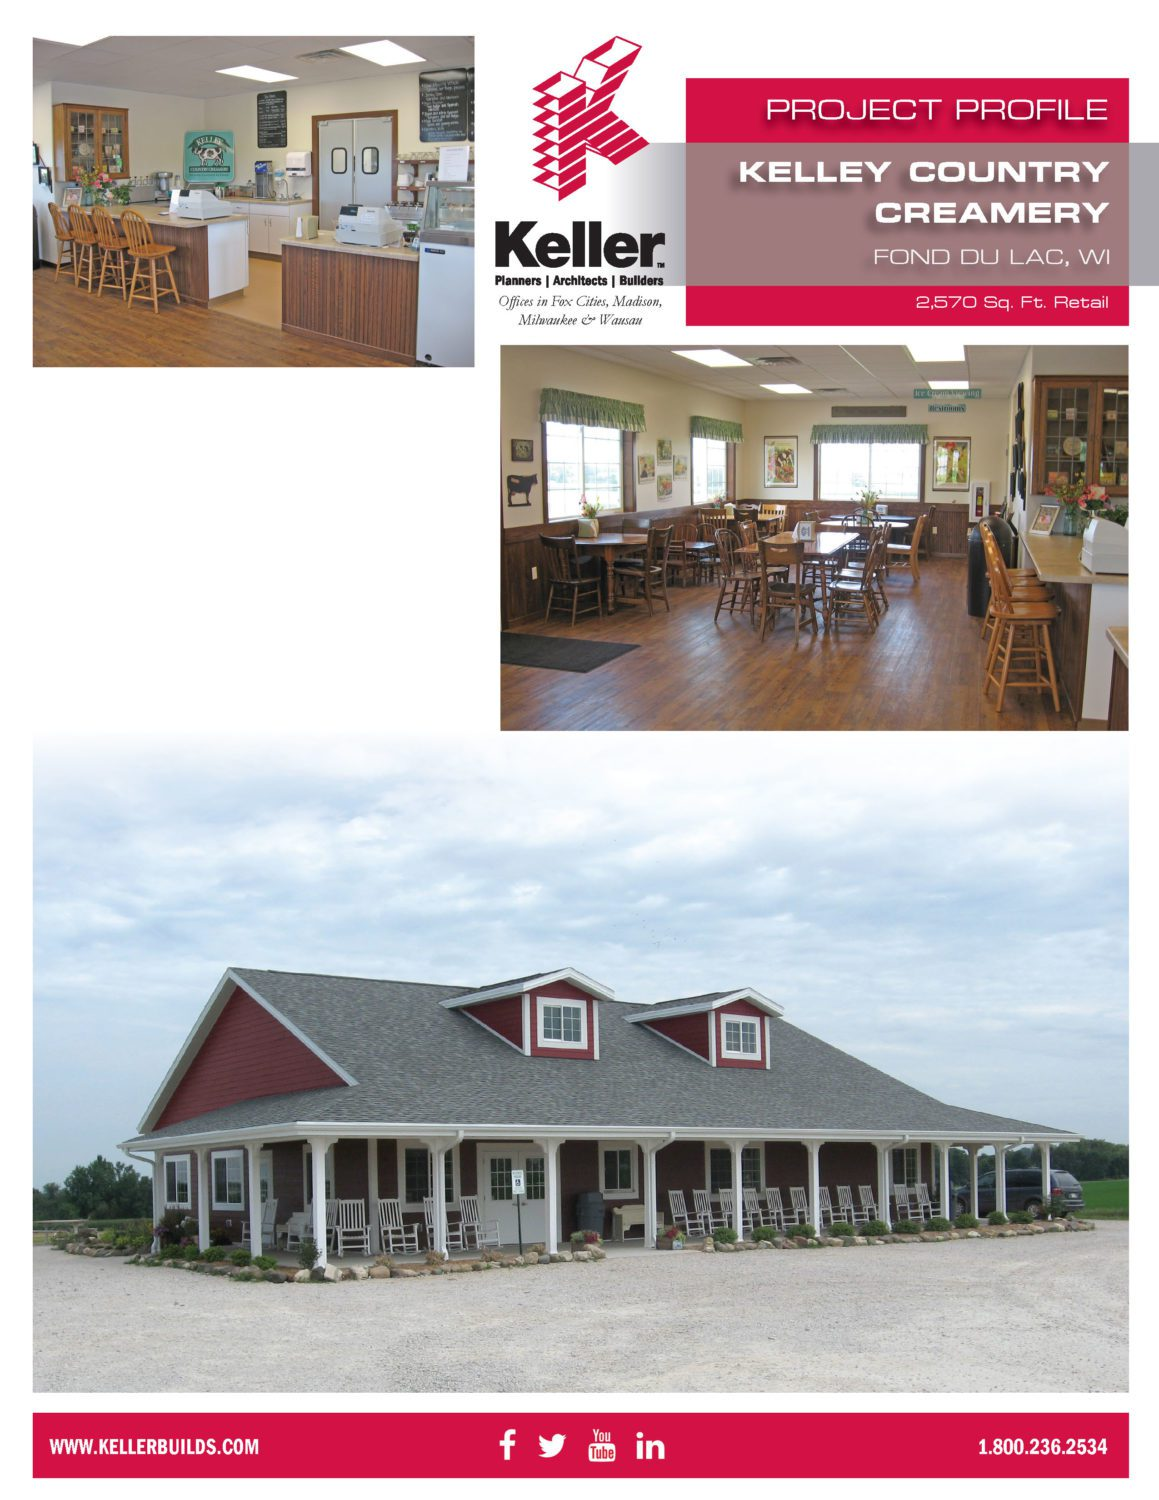 KELLEY COUNTRY CREAMERY